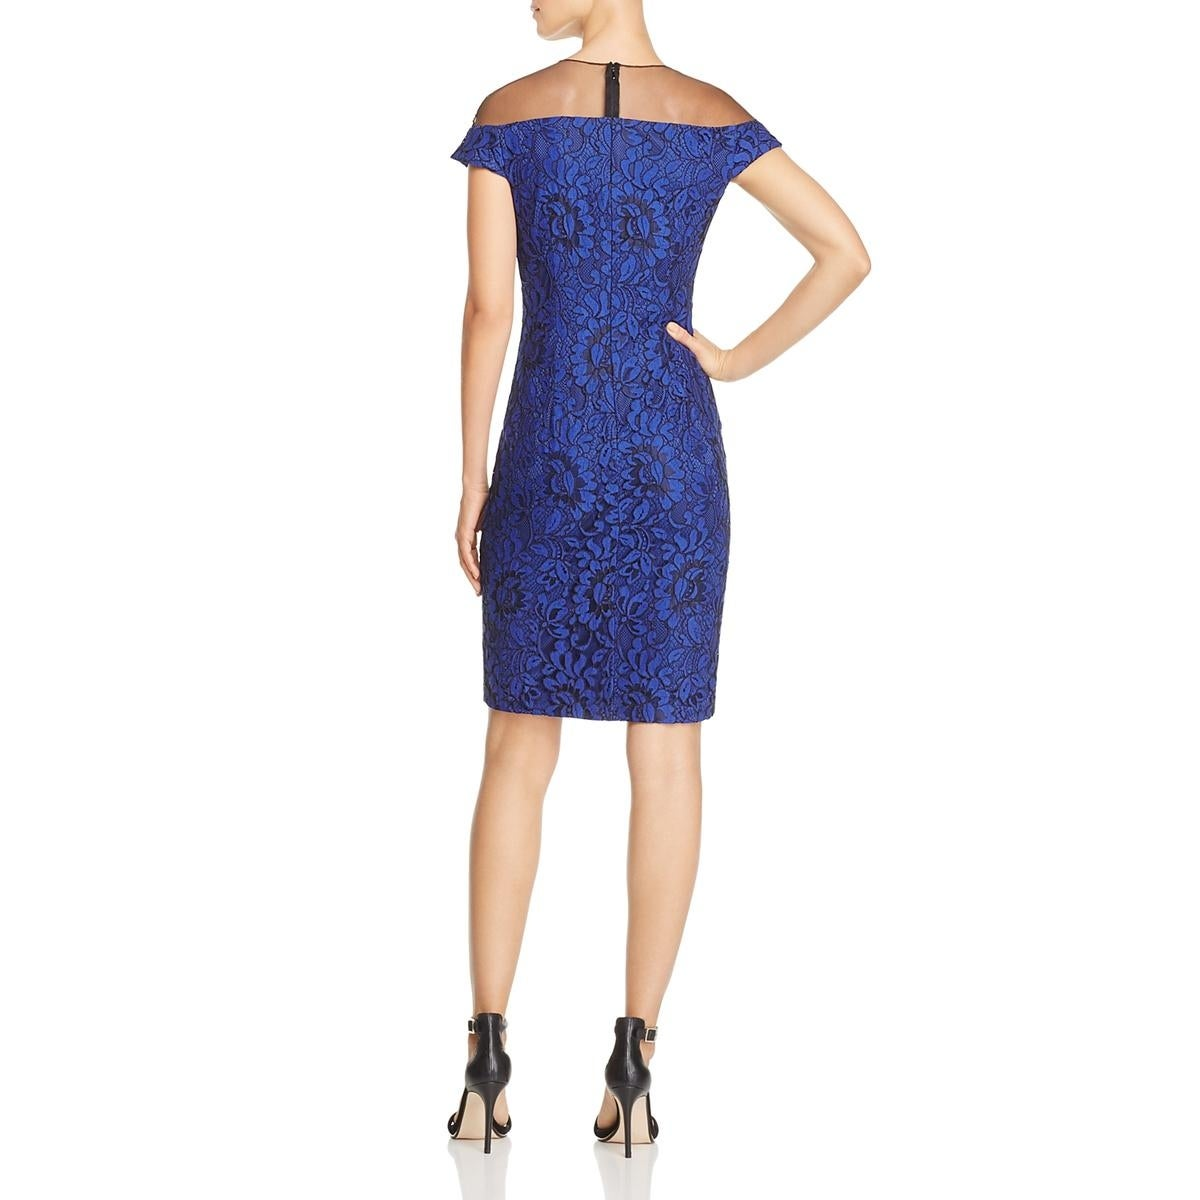 dd52dbe6a3 Carmen Marc Valvo Womens Semi-Formal Dress Lace Beaded - 8 - Free Shipping  Today - Overstock - 28141592